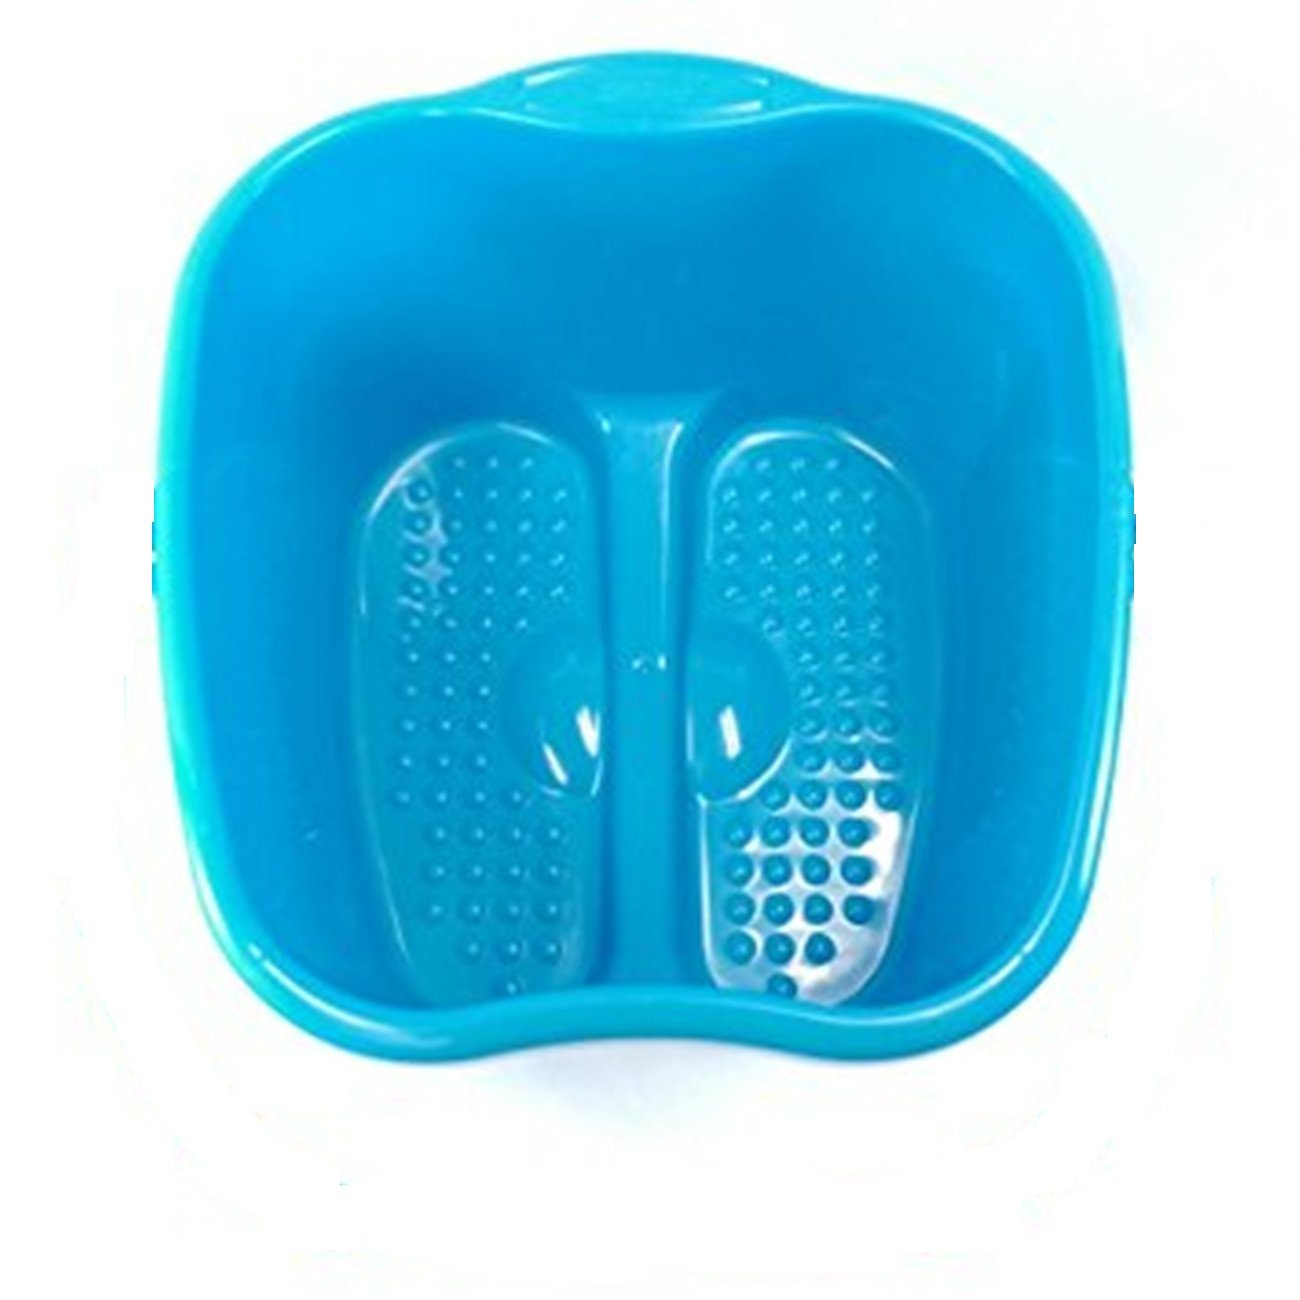 Vextronic Footbath Tub Large Foot Basin For Soaking Foot,Pedicure,Spa and Foot Massage (Blue)